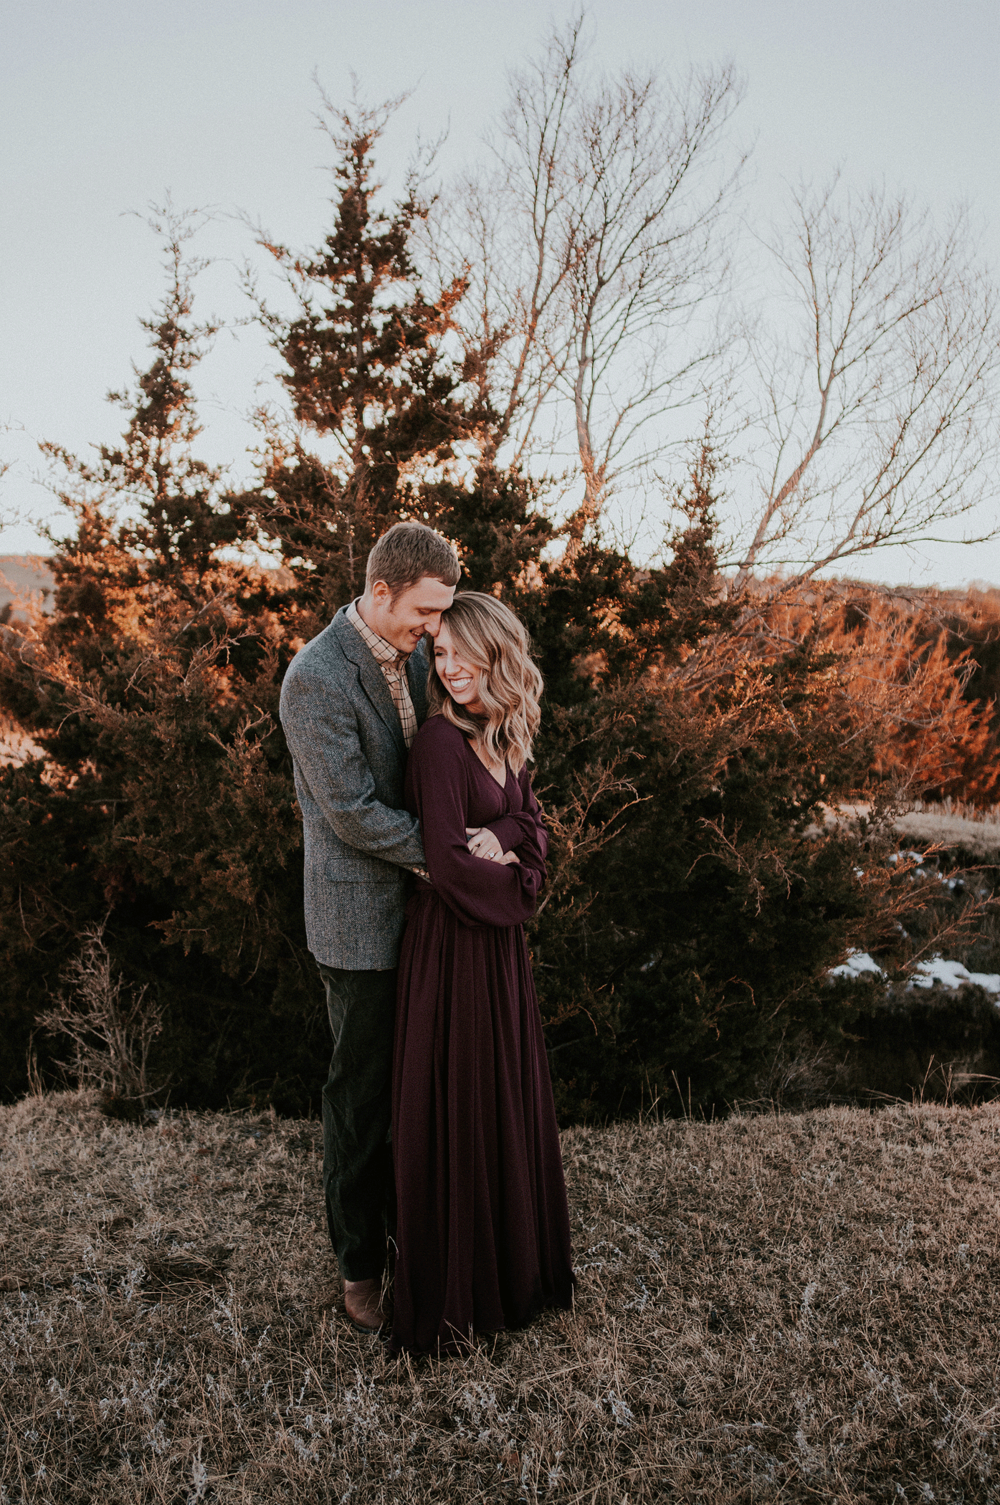 kaylie-sirek-nebraska-wedding-engagement-photographer-photography-grand-island-kearney-hastings-lincoln-40.png